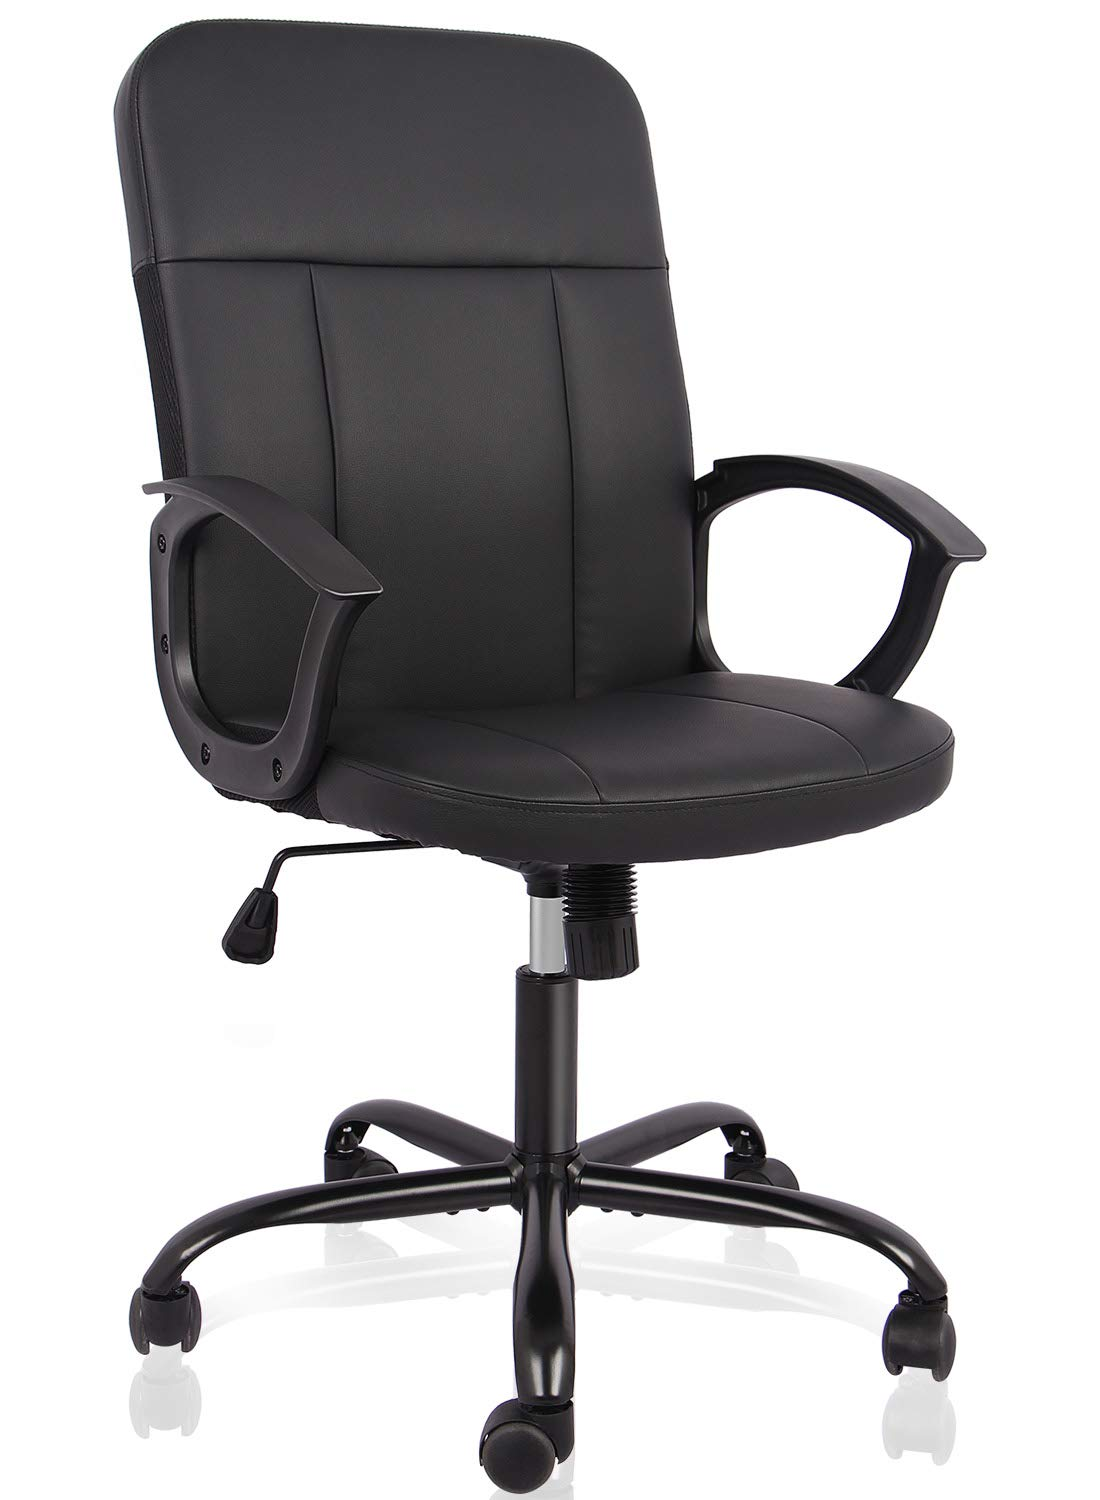 Office Chair,Mid Back Premium Bonded Leather Office Computer Swivel Desk Task Chair, ErgonomicExecutiveChairwith Lumbar Padding and Armrests